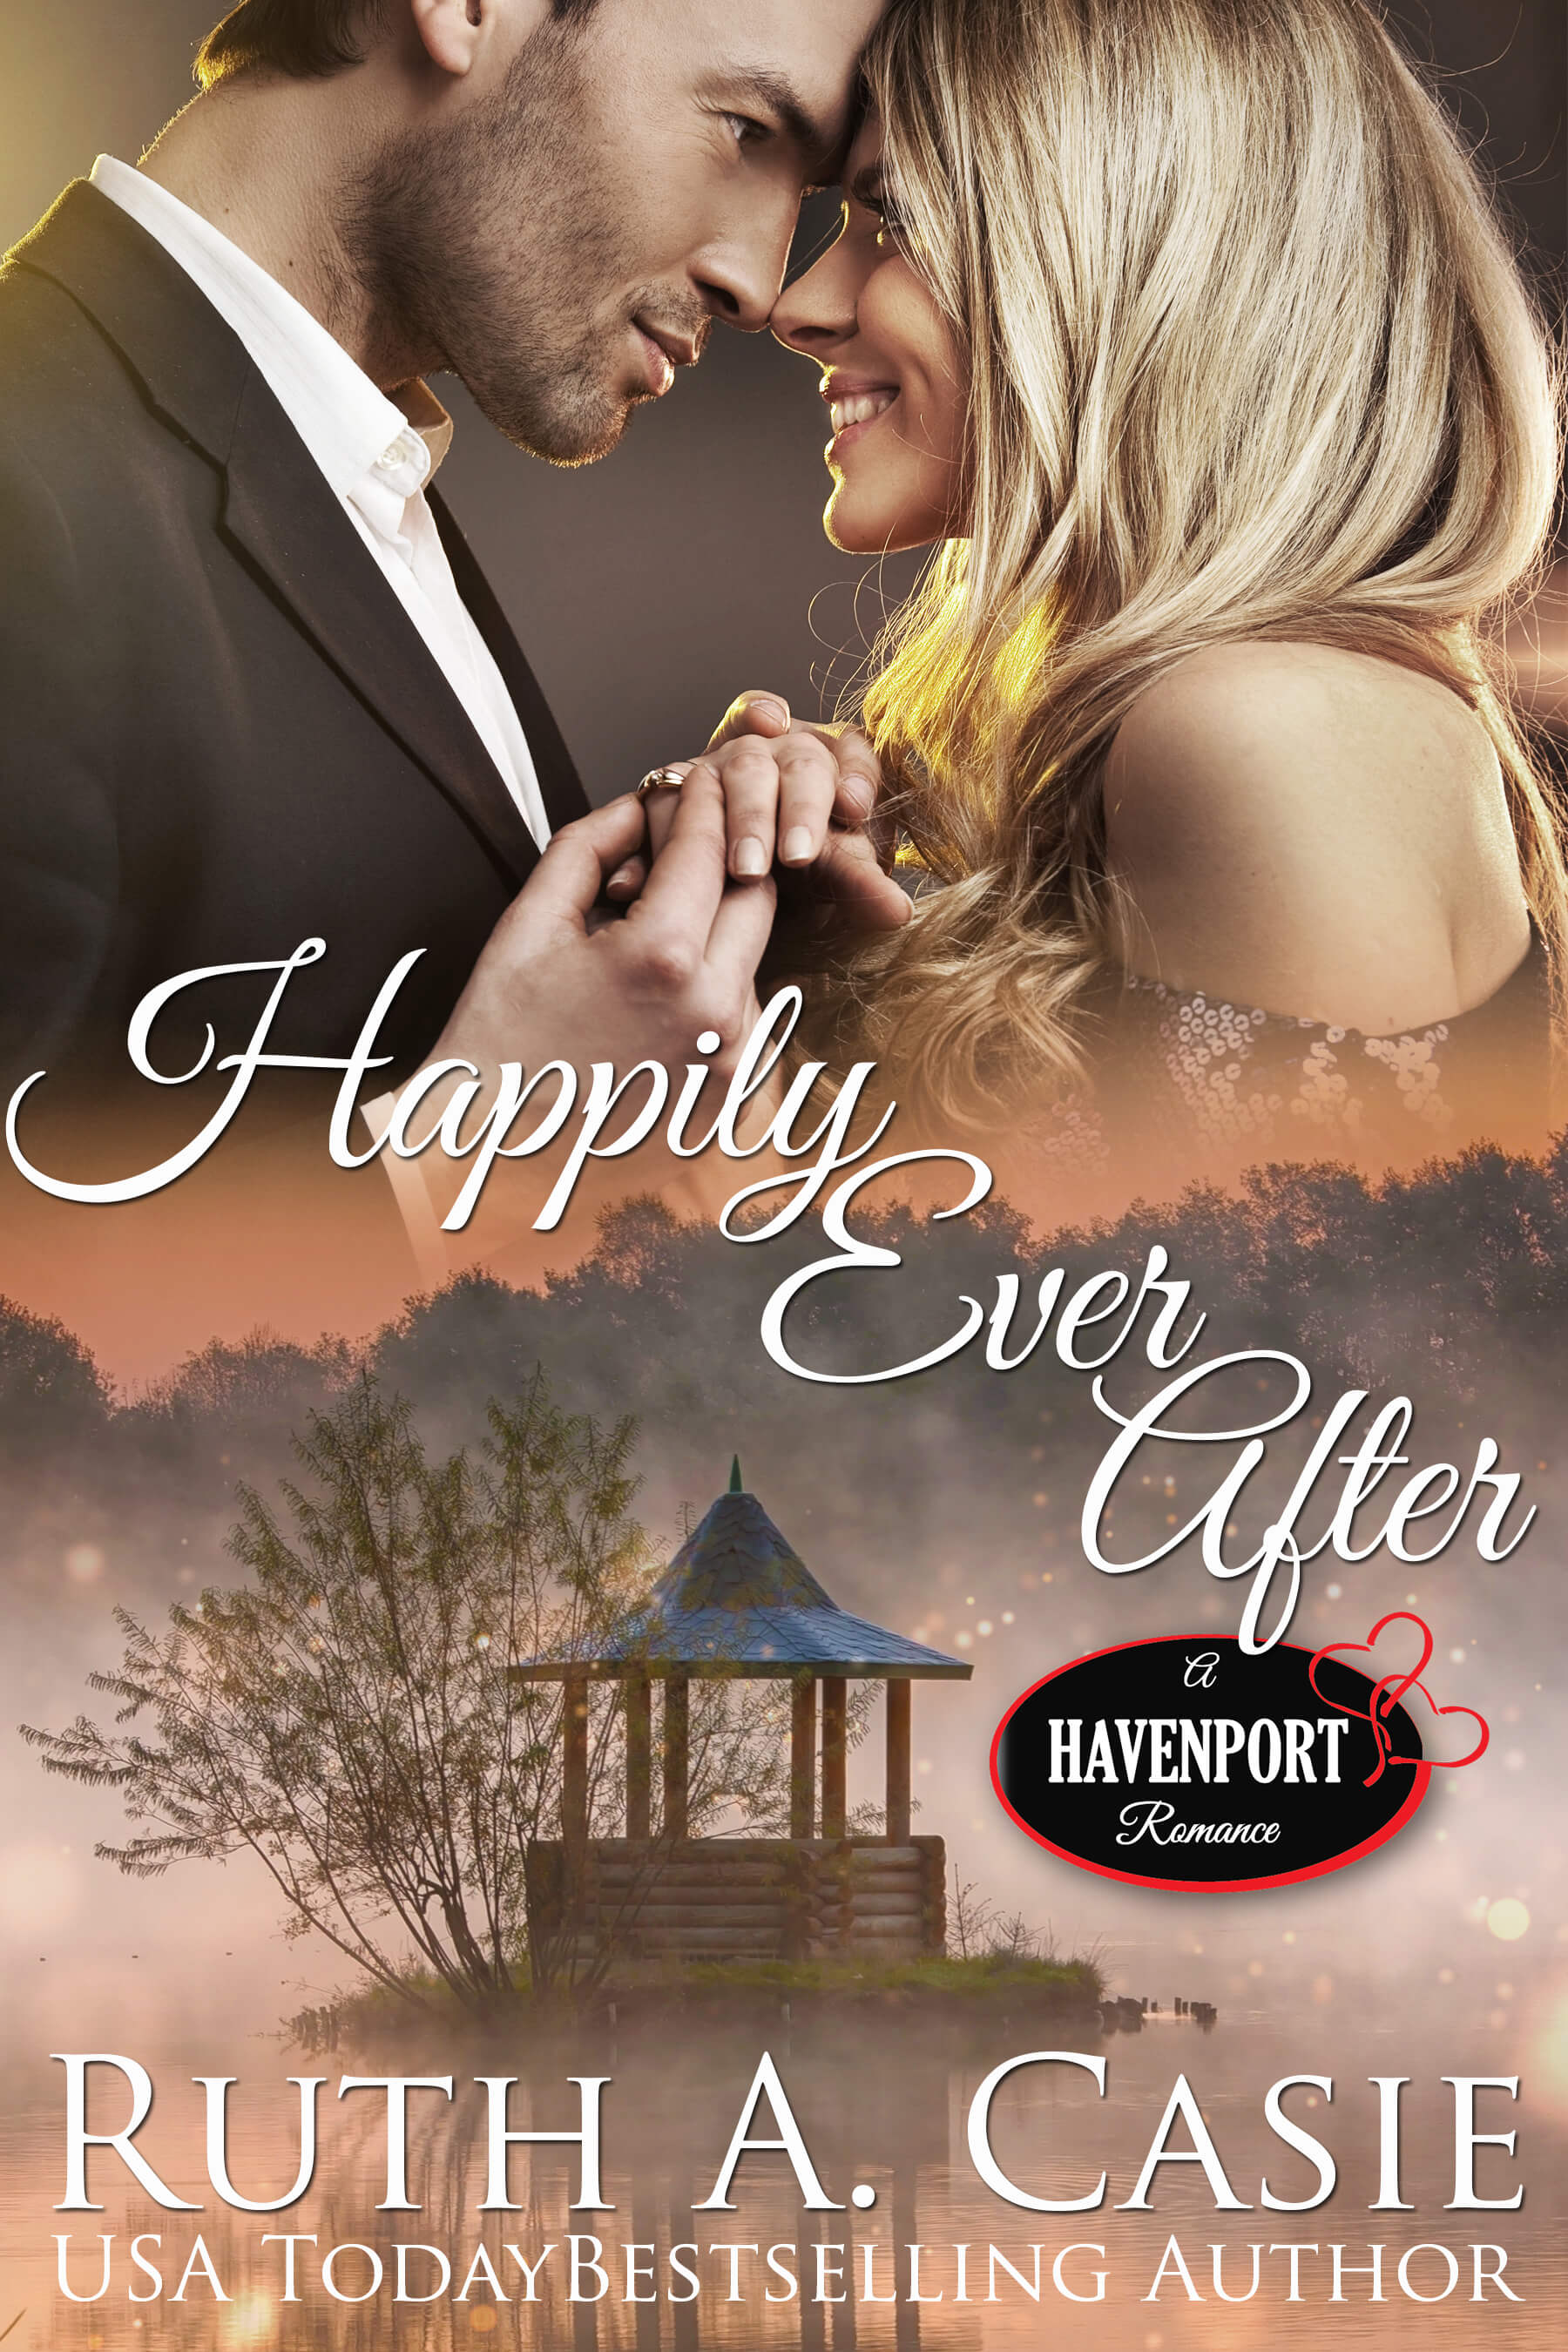 Ruth A. Casie's Happily Ever After